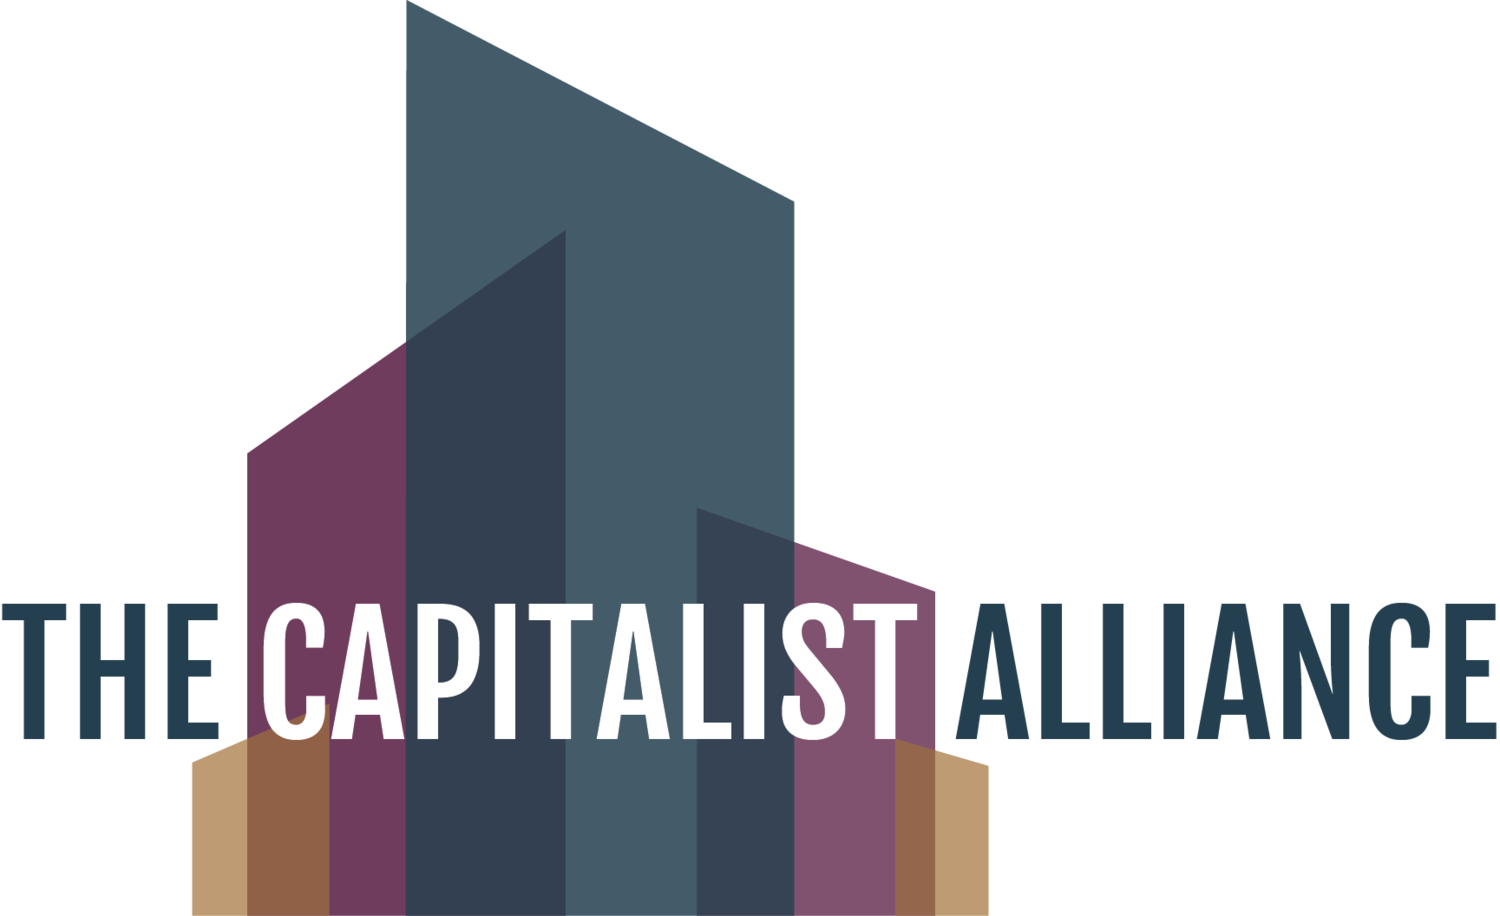 The Capitalist Alliance